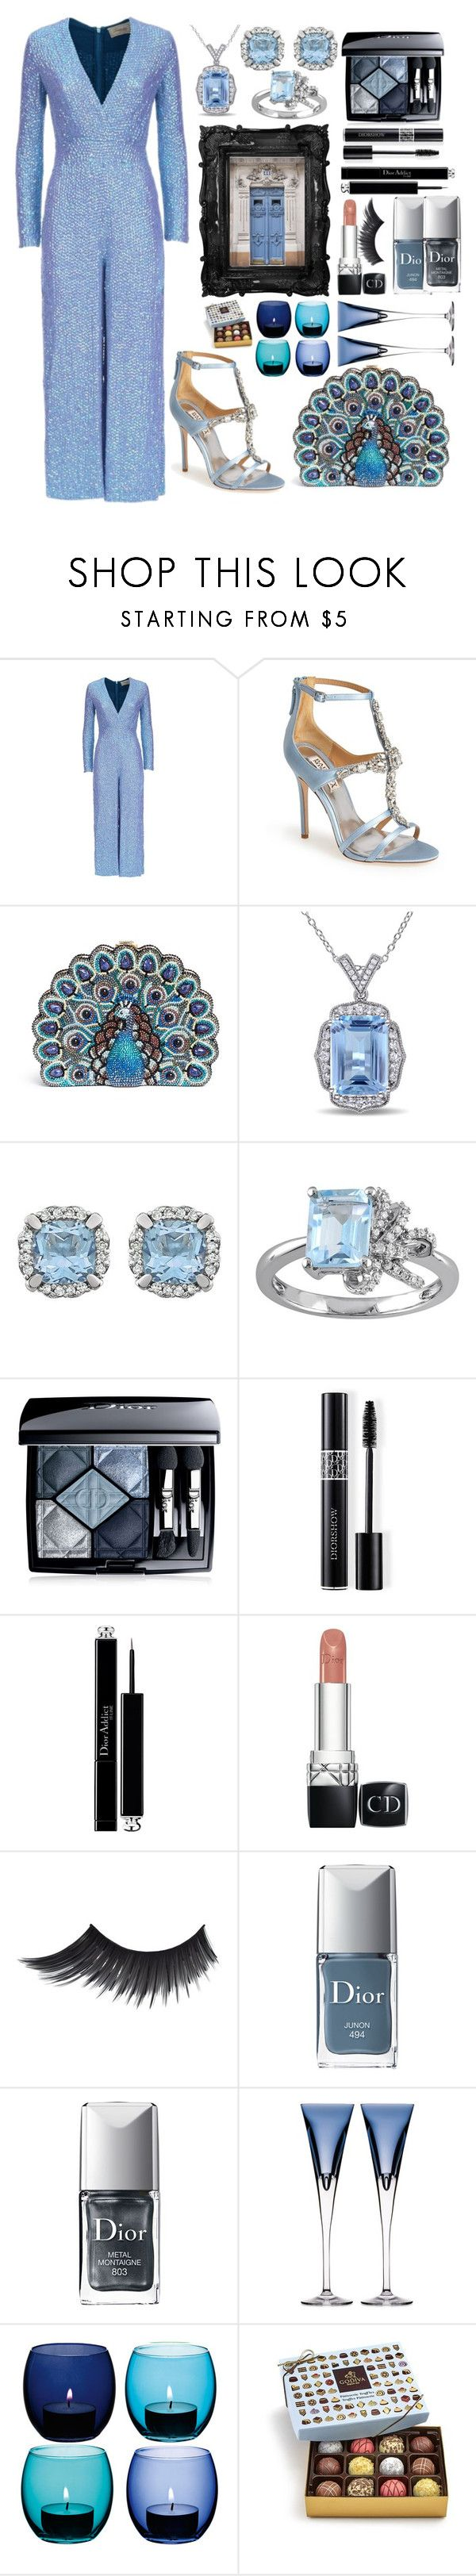 """""""Ice Queen"""" by pulseofthematter ❤ liked on Polyvore featuring Temperley London, Badgley Mischka, Judith Leiber, Miadora, Laura Ashley, Christian Dior, Waterford, LSA International and Godiva"""